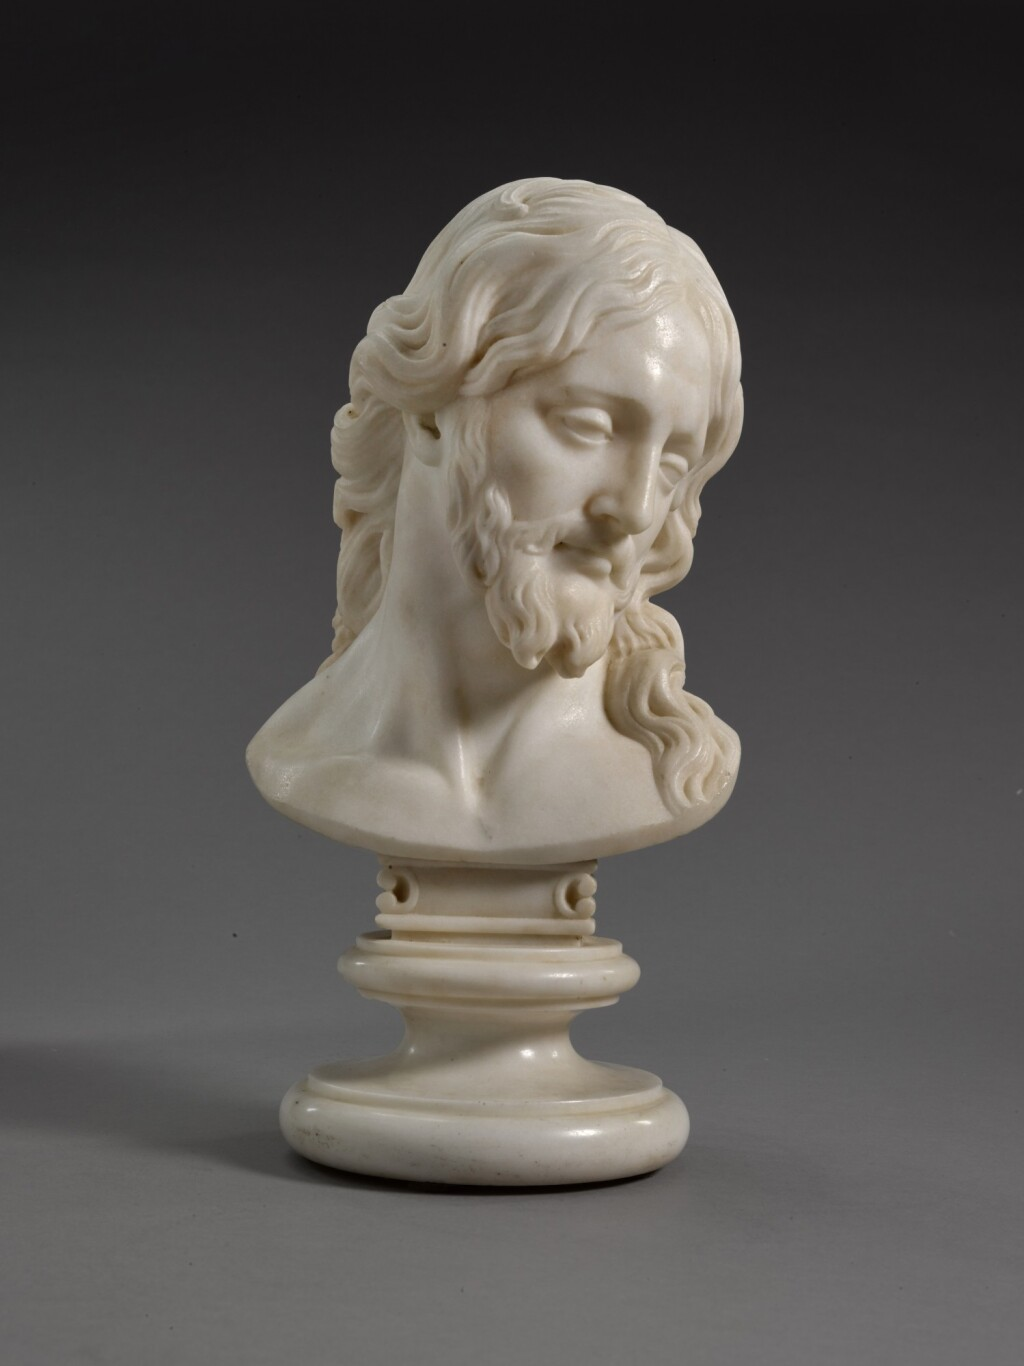 ENGLISH, PROBABLY 18TH CENTURY | BUST OF CHRIST